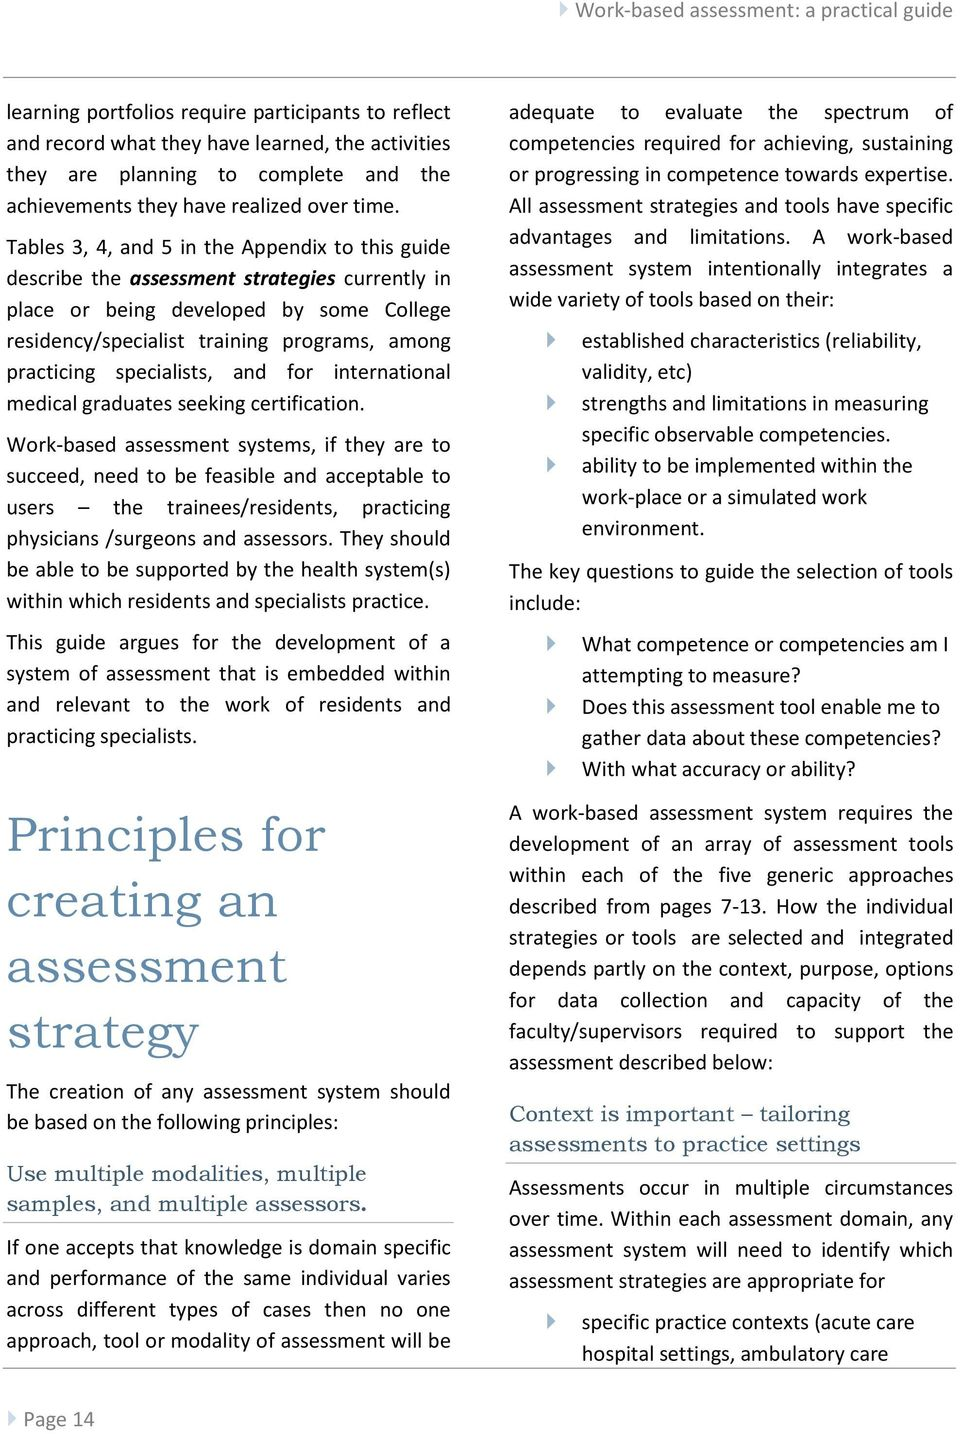 Tables 3, 4, and 5 in the Appendix to this guide describe the assessment strategies currently in place or being developed by some College residency/specialist training programs, among practicing